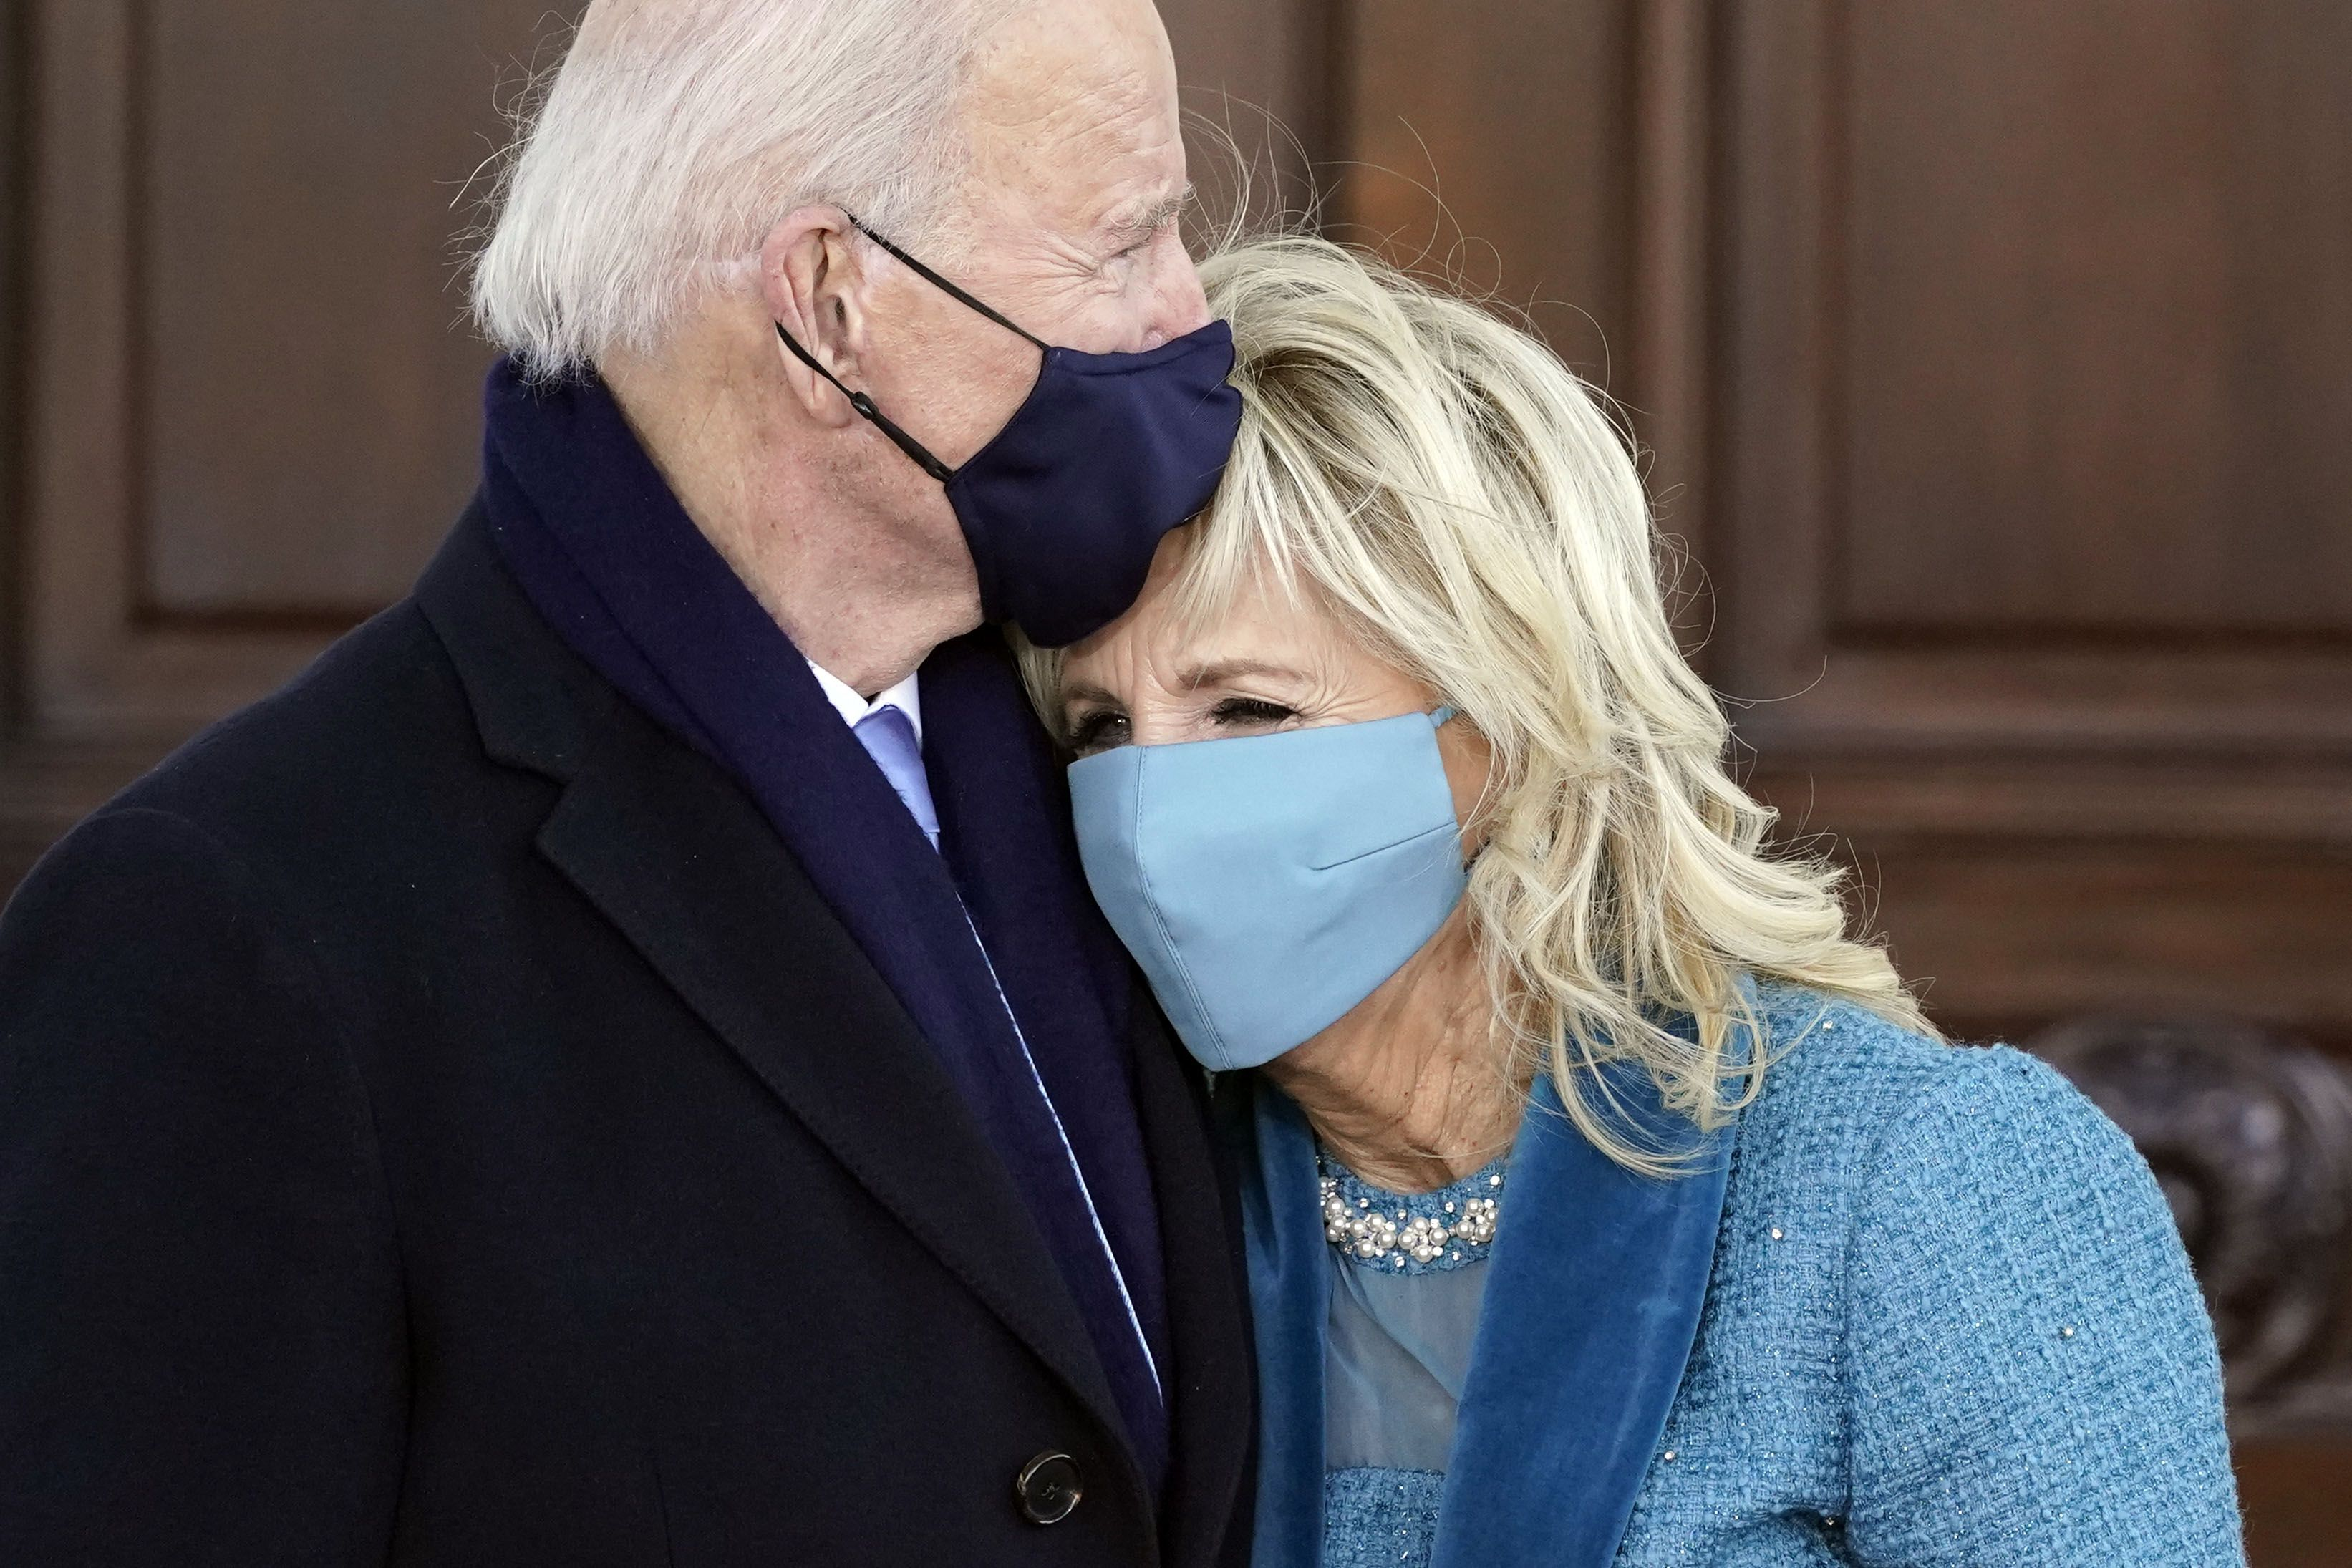 10 of Joe and Jill Biden's sweetest inauguration moments